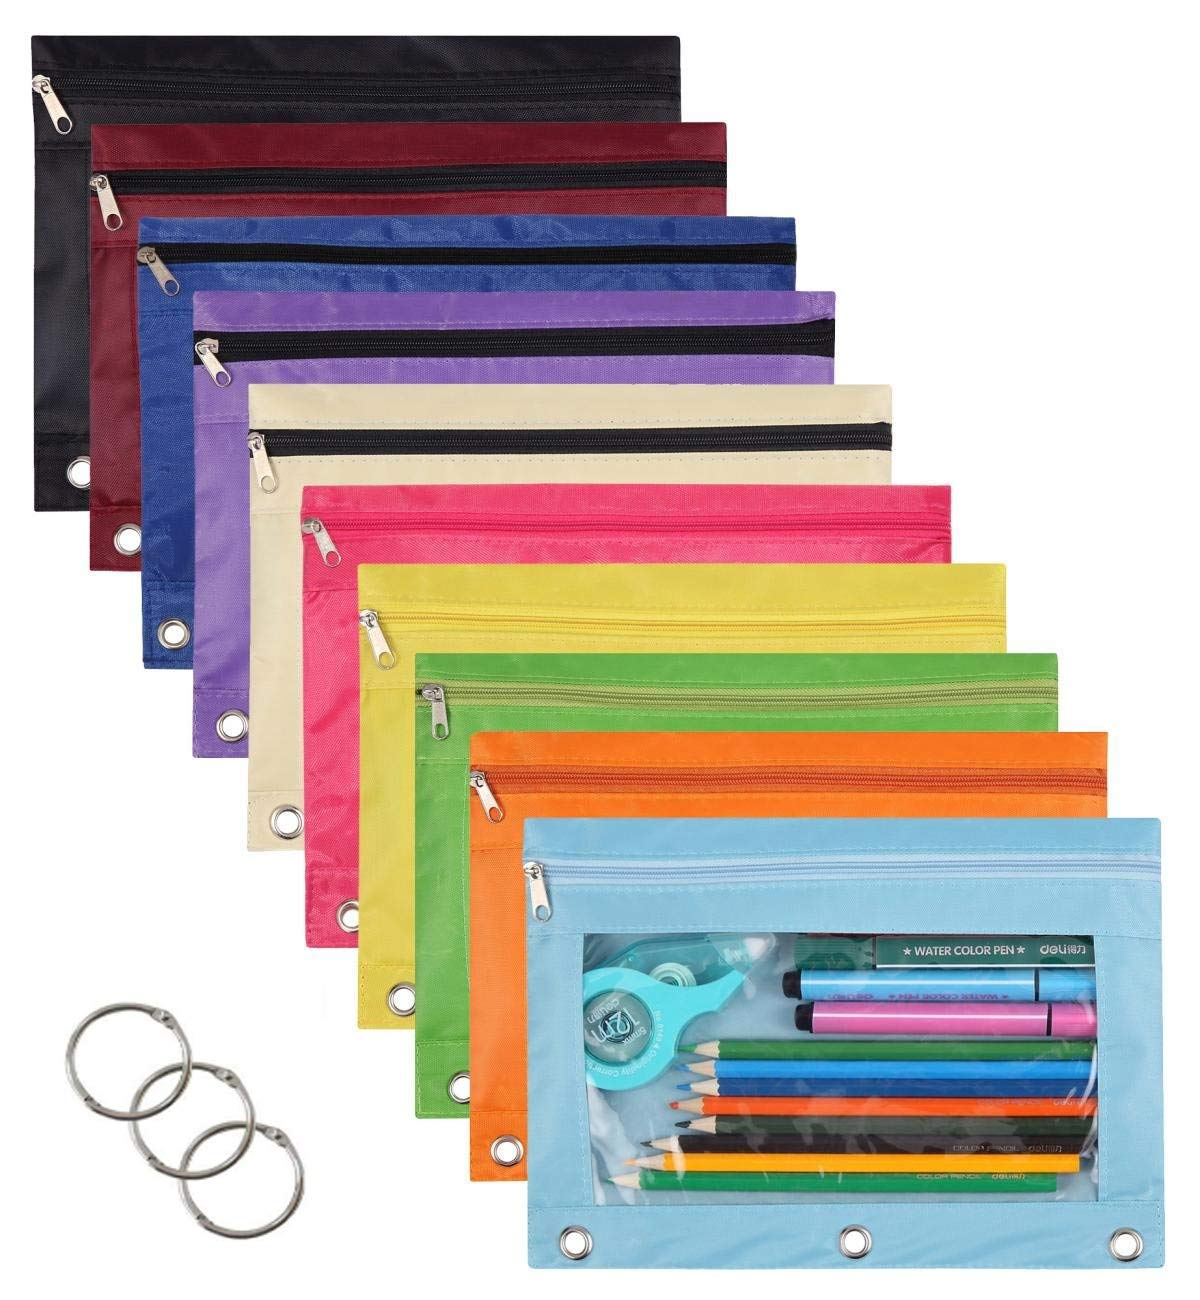 WODISON 10 Packs 3 Ring Pencil Pen Pouches School Class Binder Pocket Case Office Stationery Bag with 10 Colors